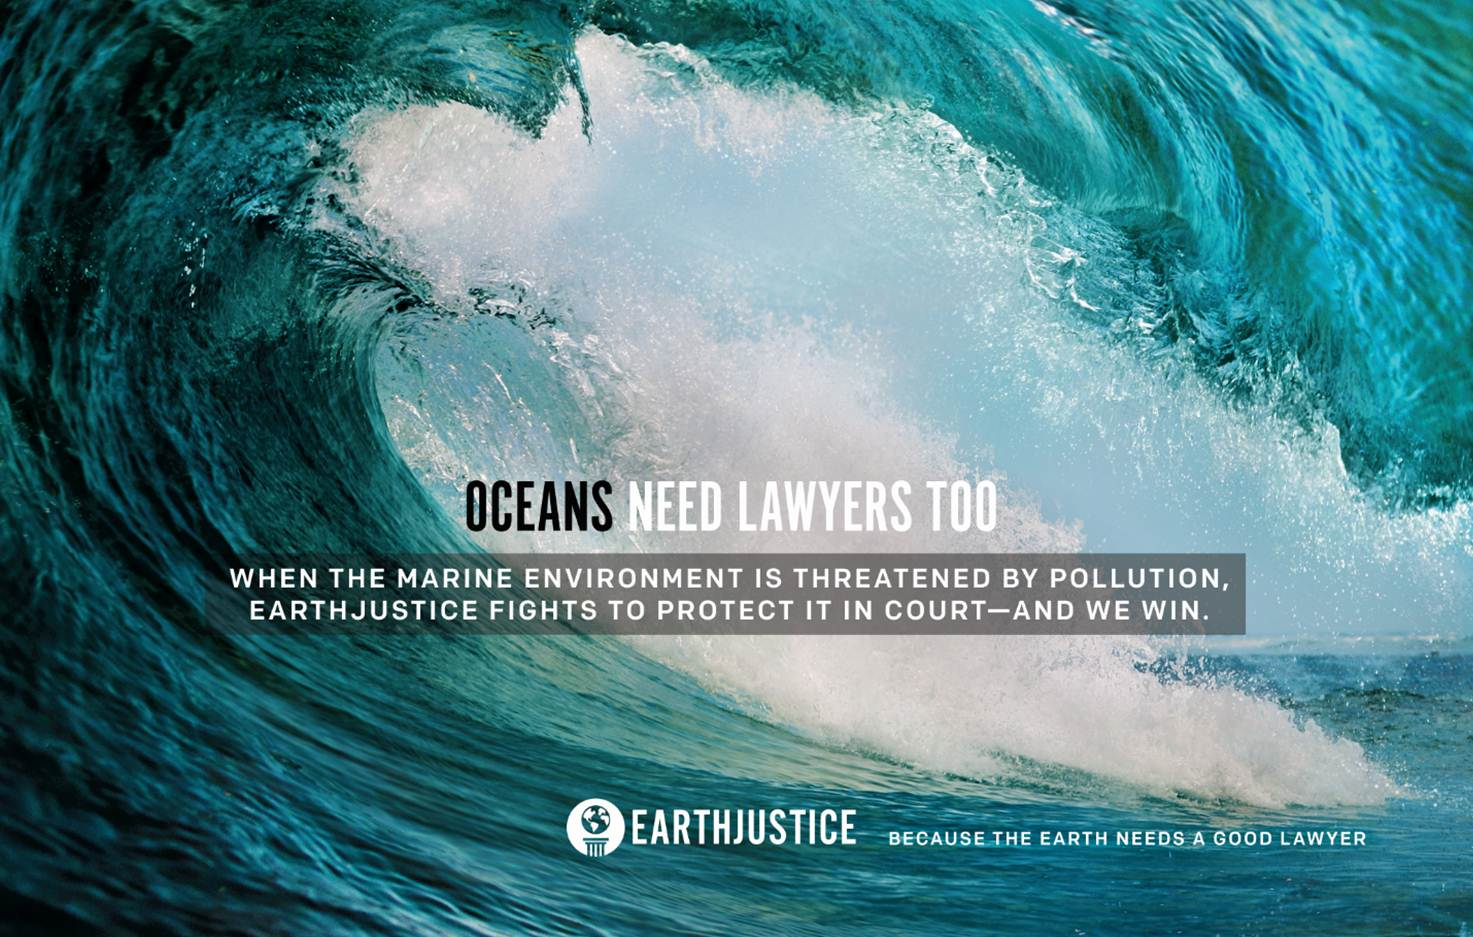 Ad launching the Earthjustice oceans campaign 2014.